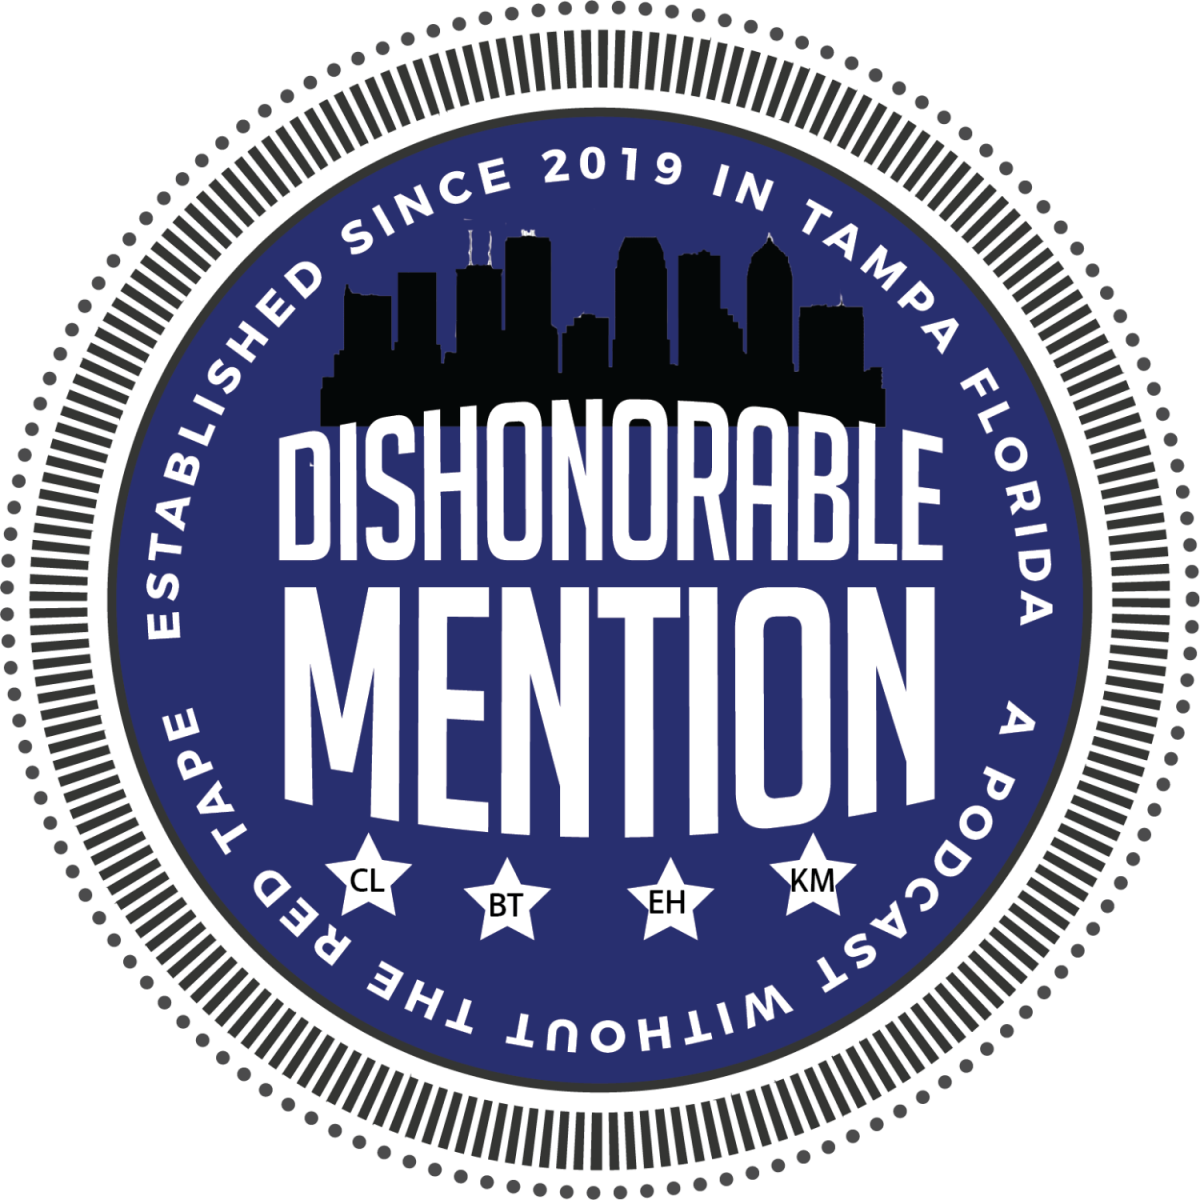 813area Podcast Network: Dishonorable Mention Episode 3: Cohen Testimony, Journalism, and the United Methodist Church